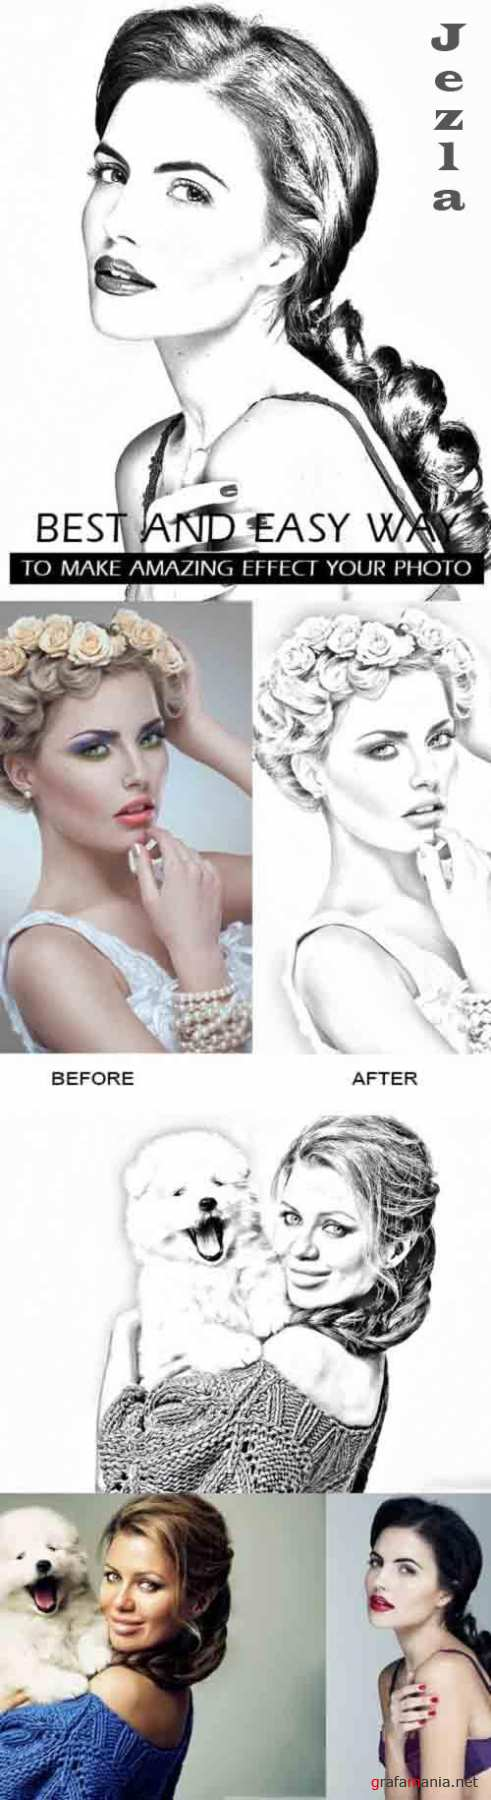 GraphicRiver - Sketch Art Photoshop Action 30781365